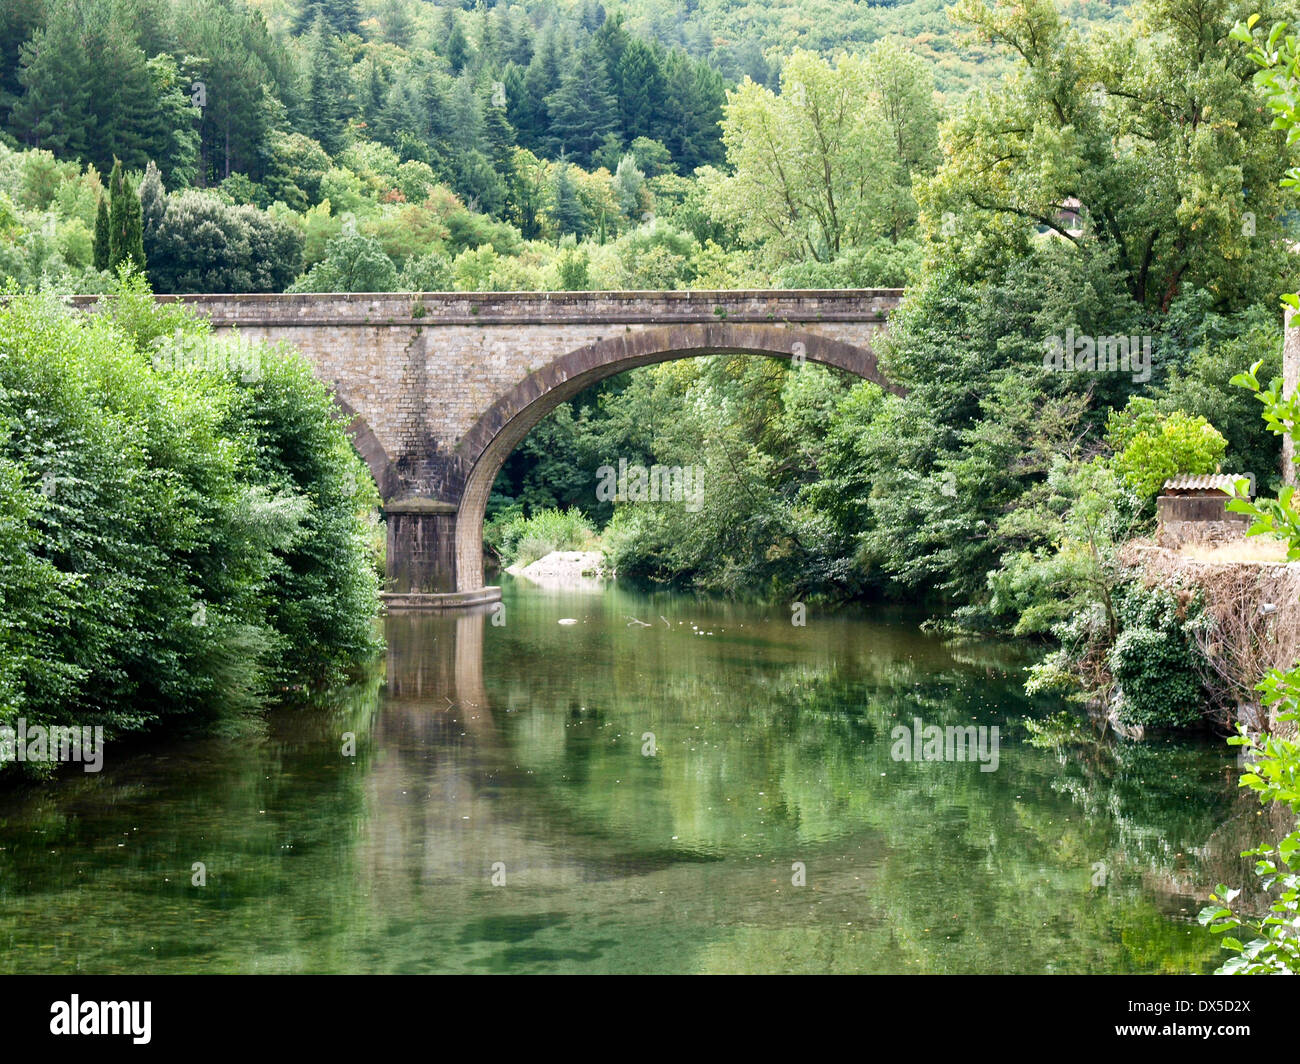 River And Nature In The French Countryside Stock Photo Royalty - French country side